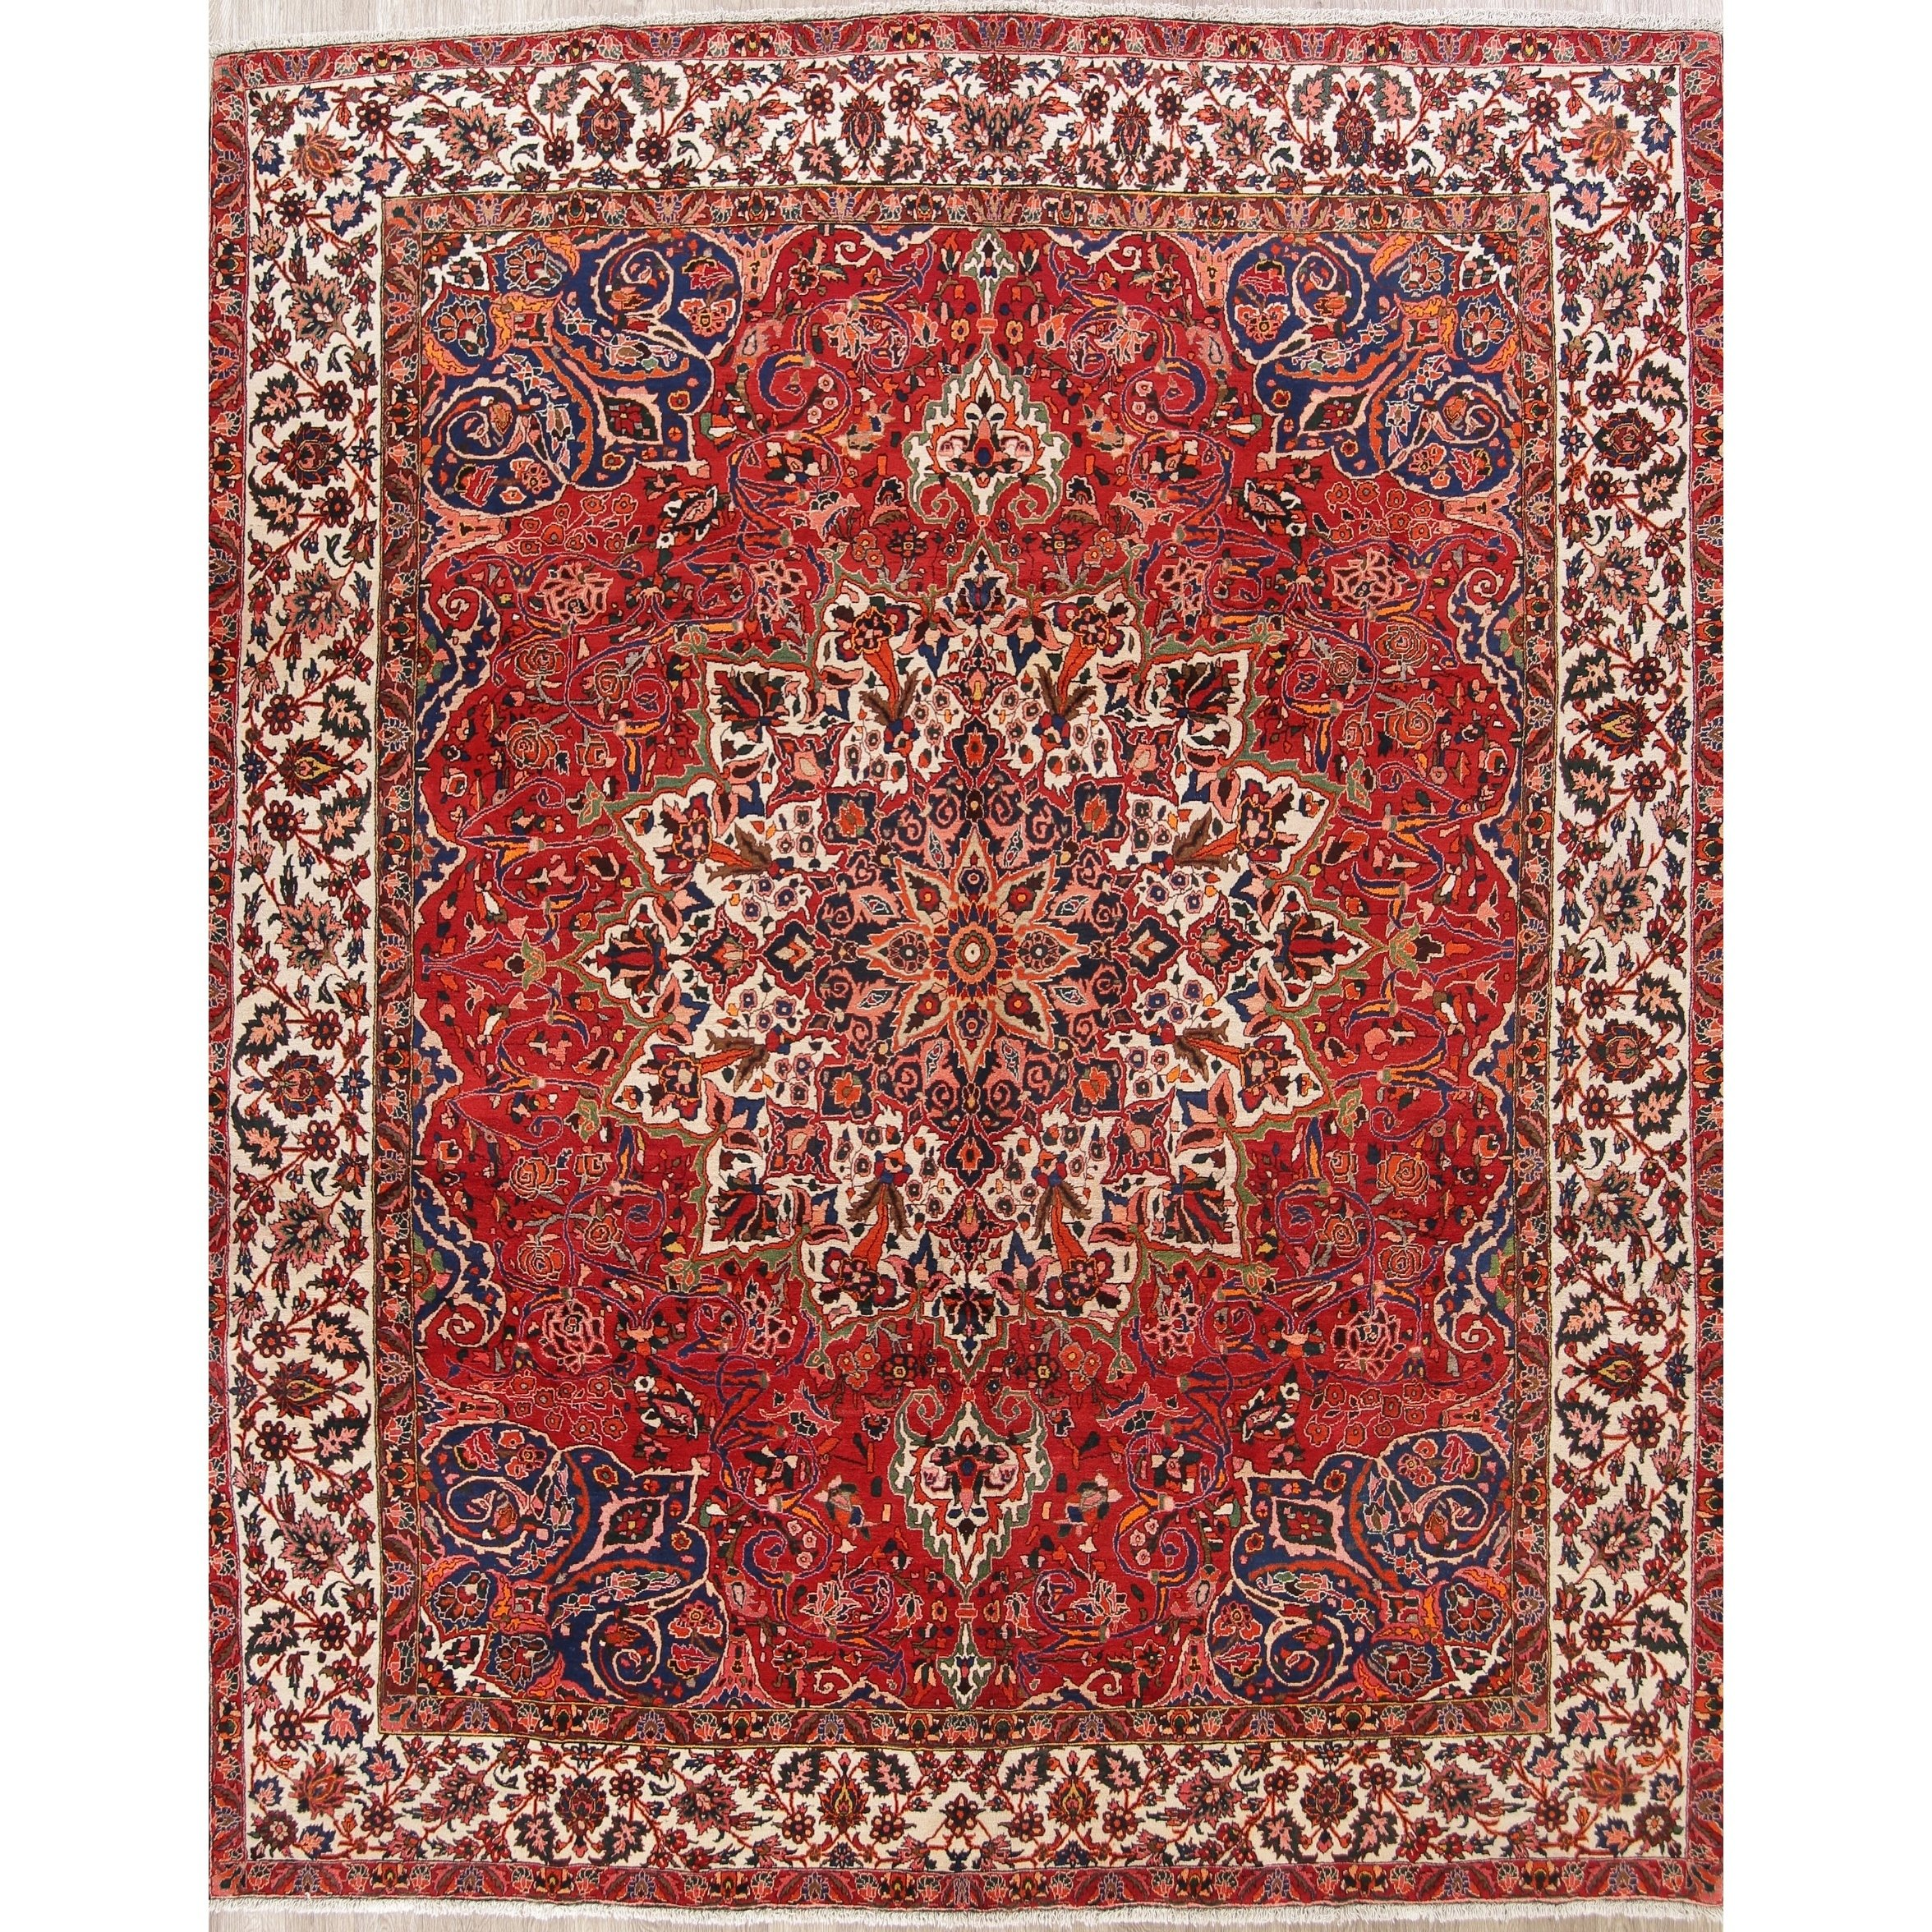 Refurbished Vintage Handmade Wool Geometric Bakhtiari Persian Area